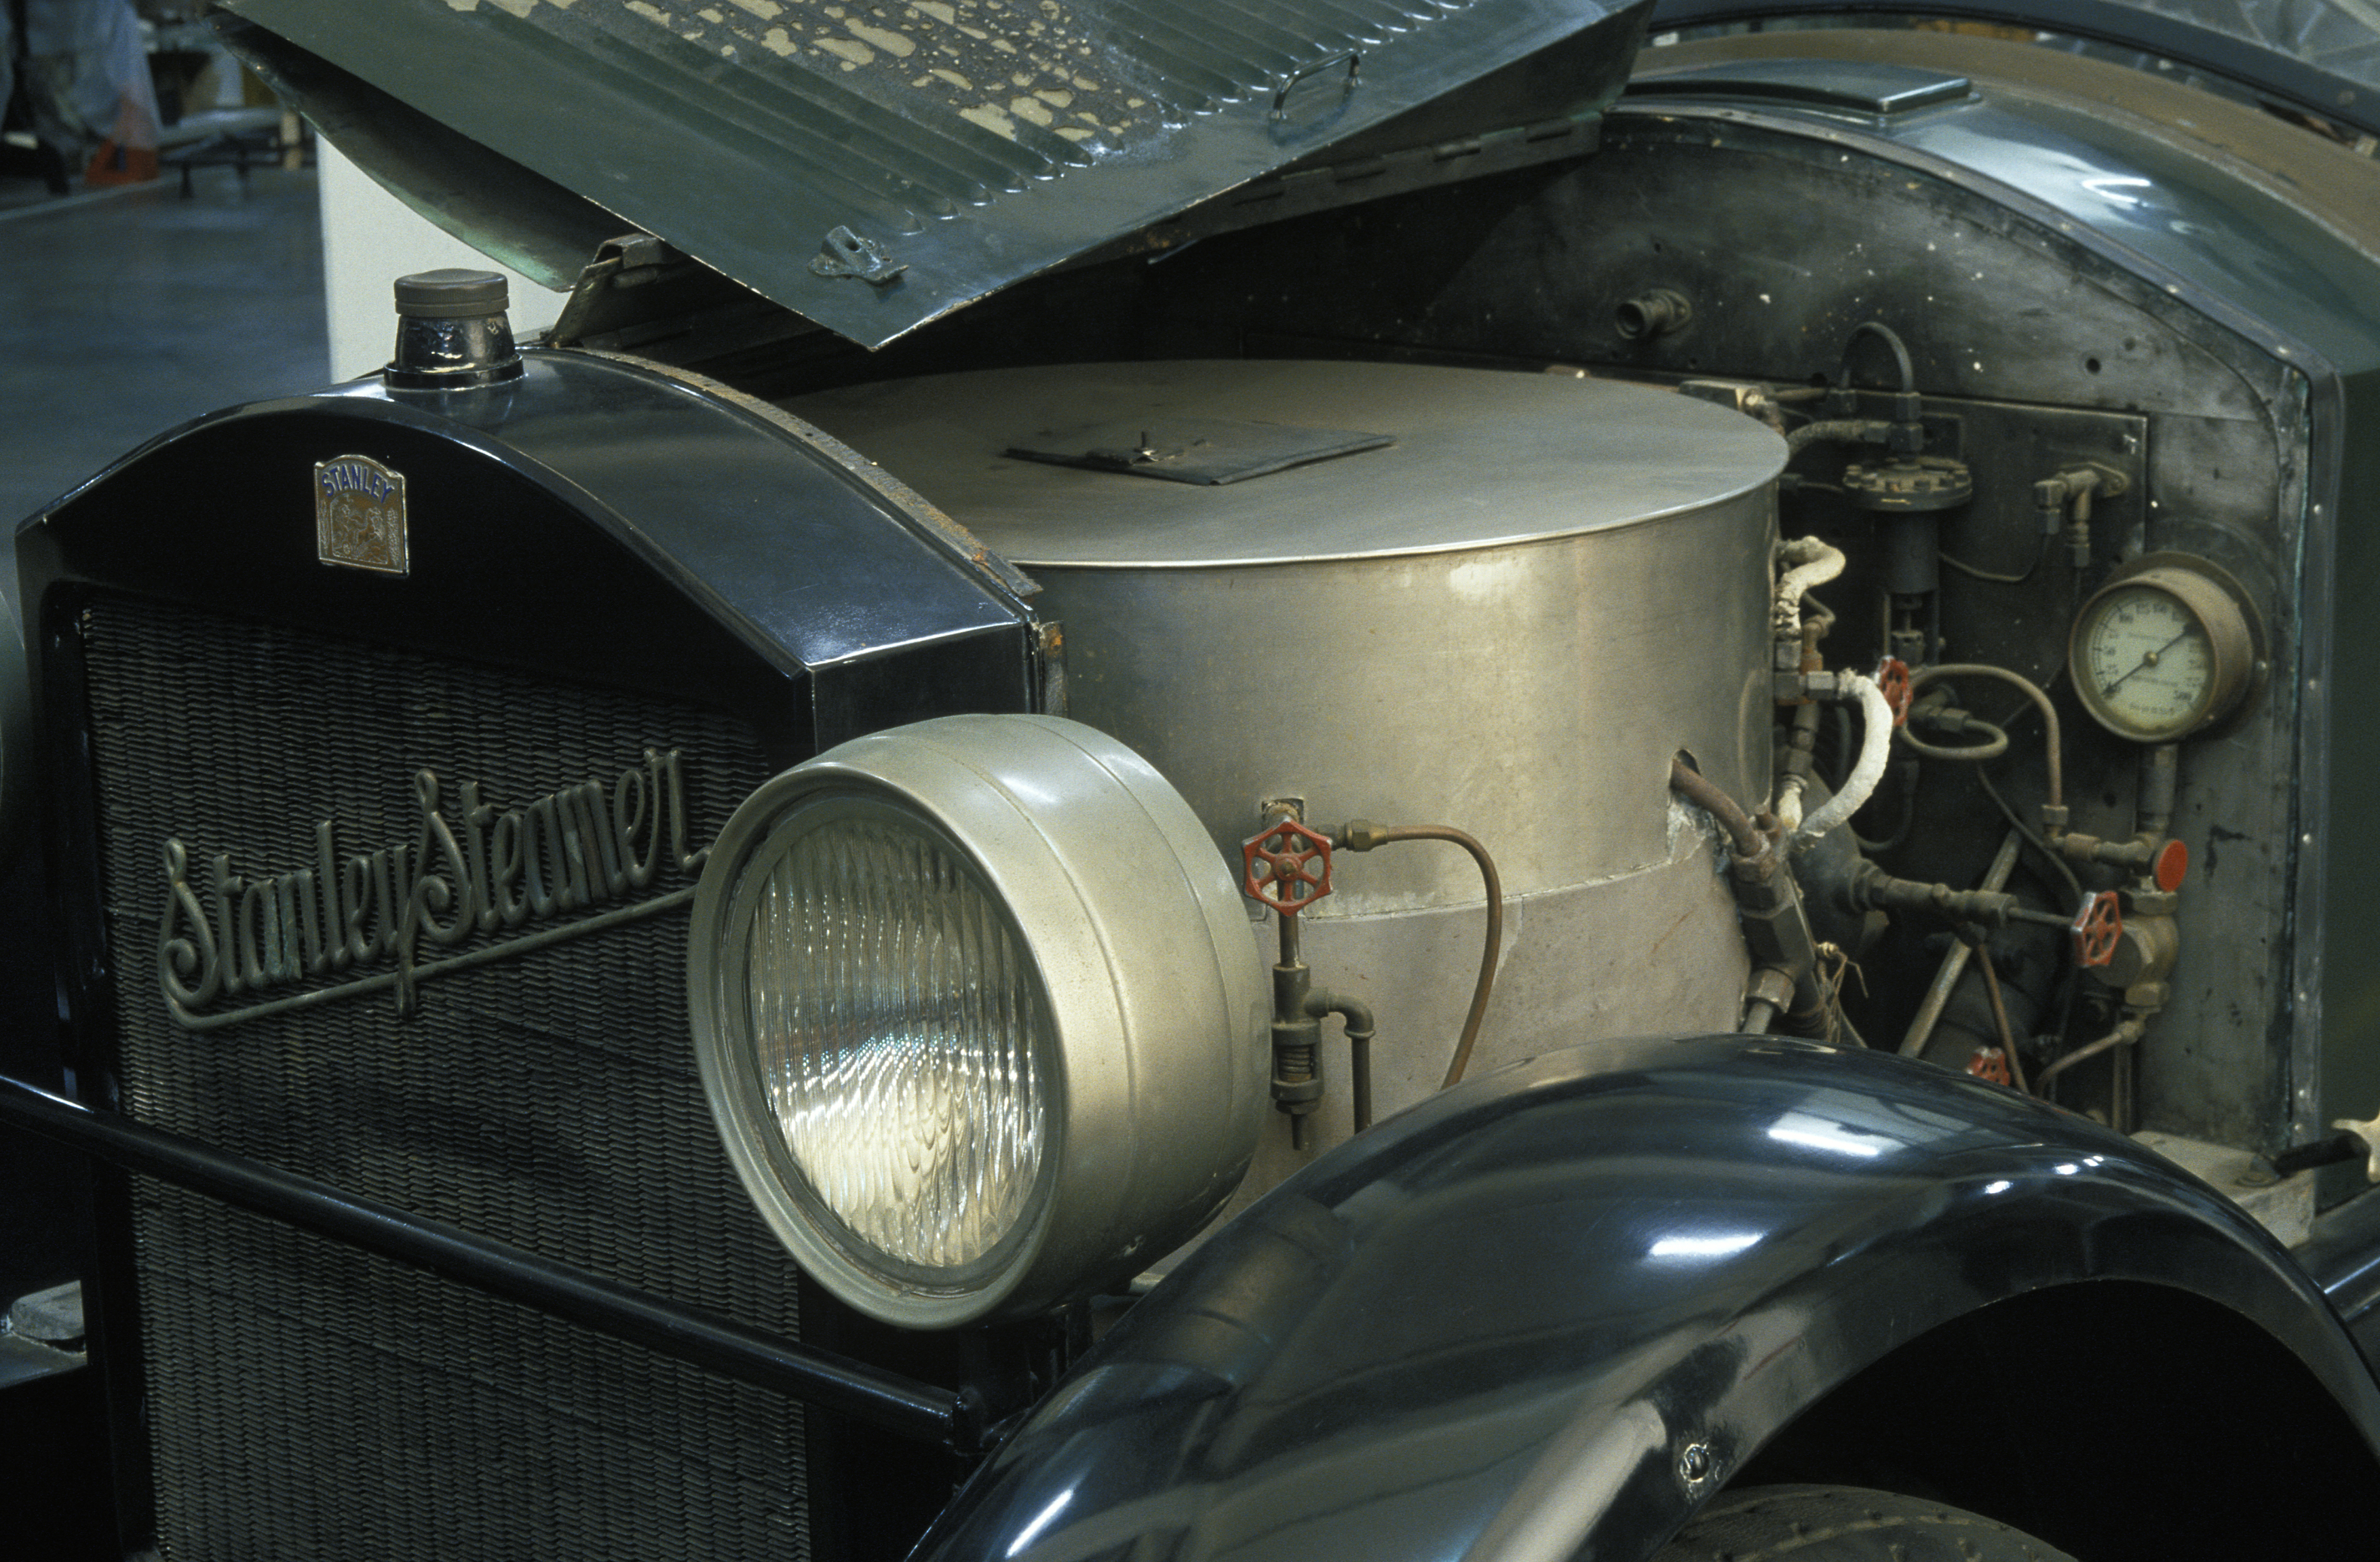 Stanley Steamer Car >> A Steam Powered Car 1922 Stanley Steamer Inside The Collection